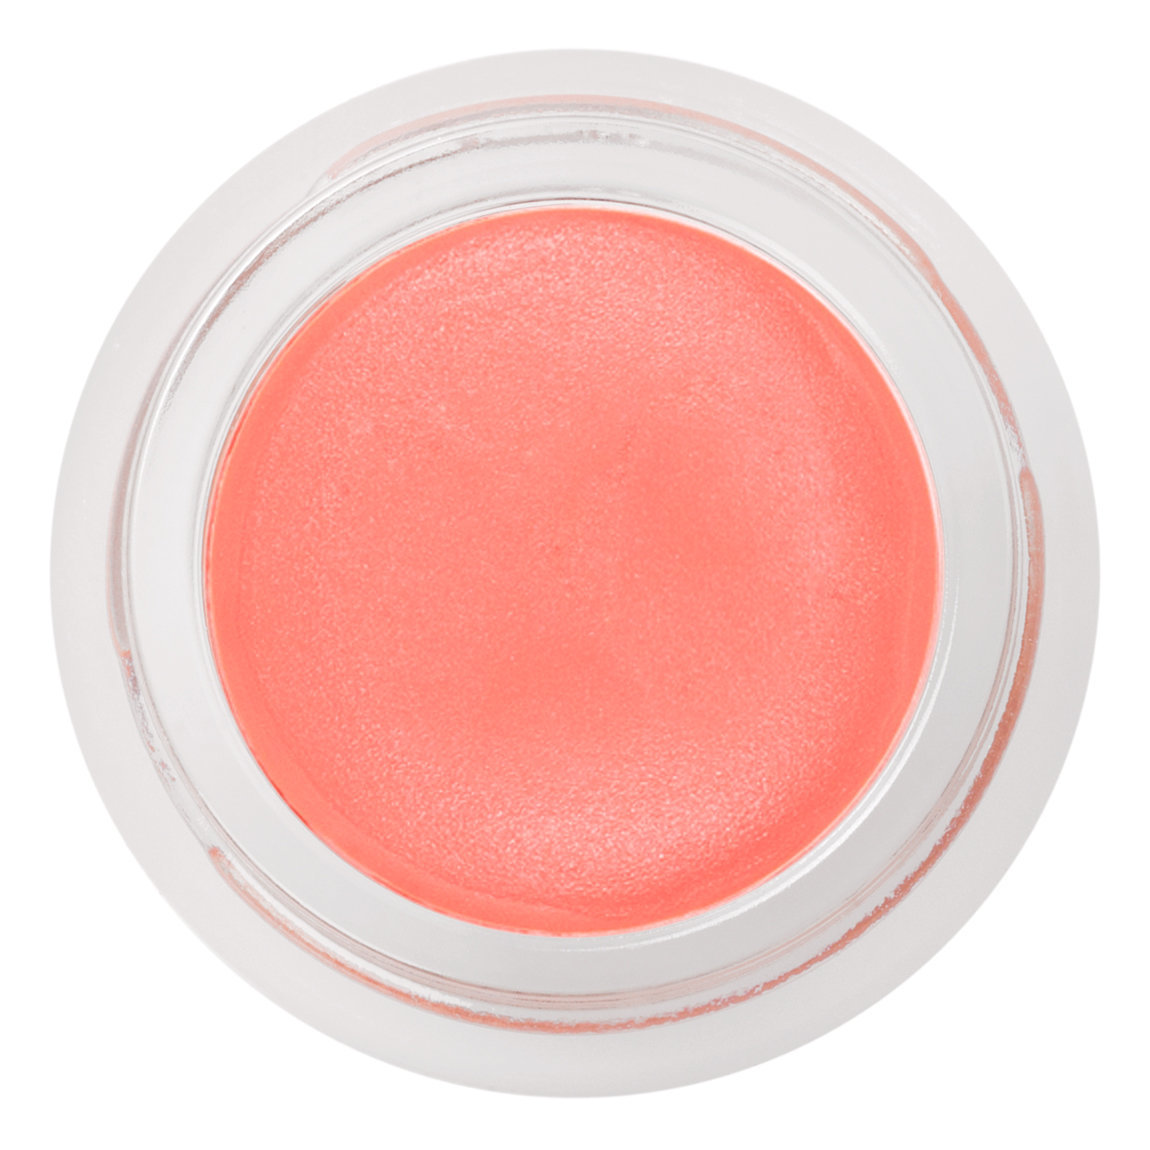 rms beauty Lip2Cheek Smile